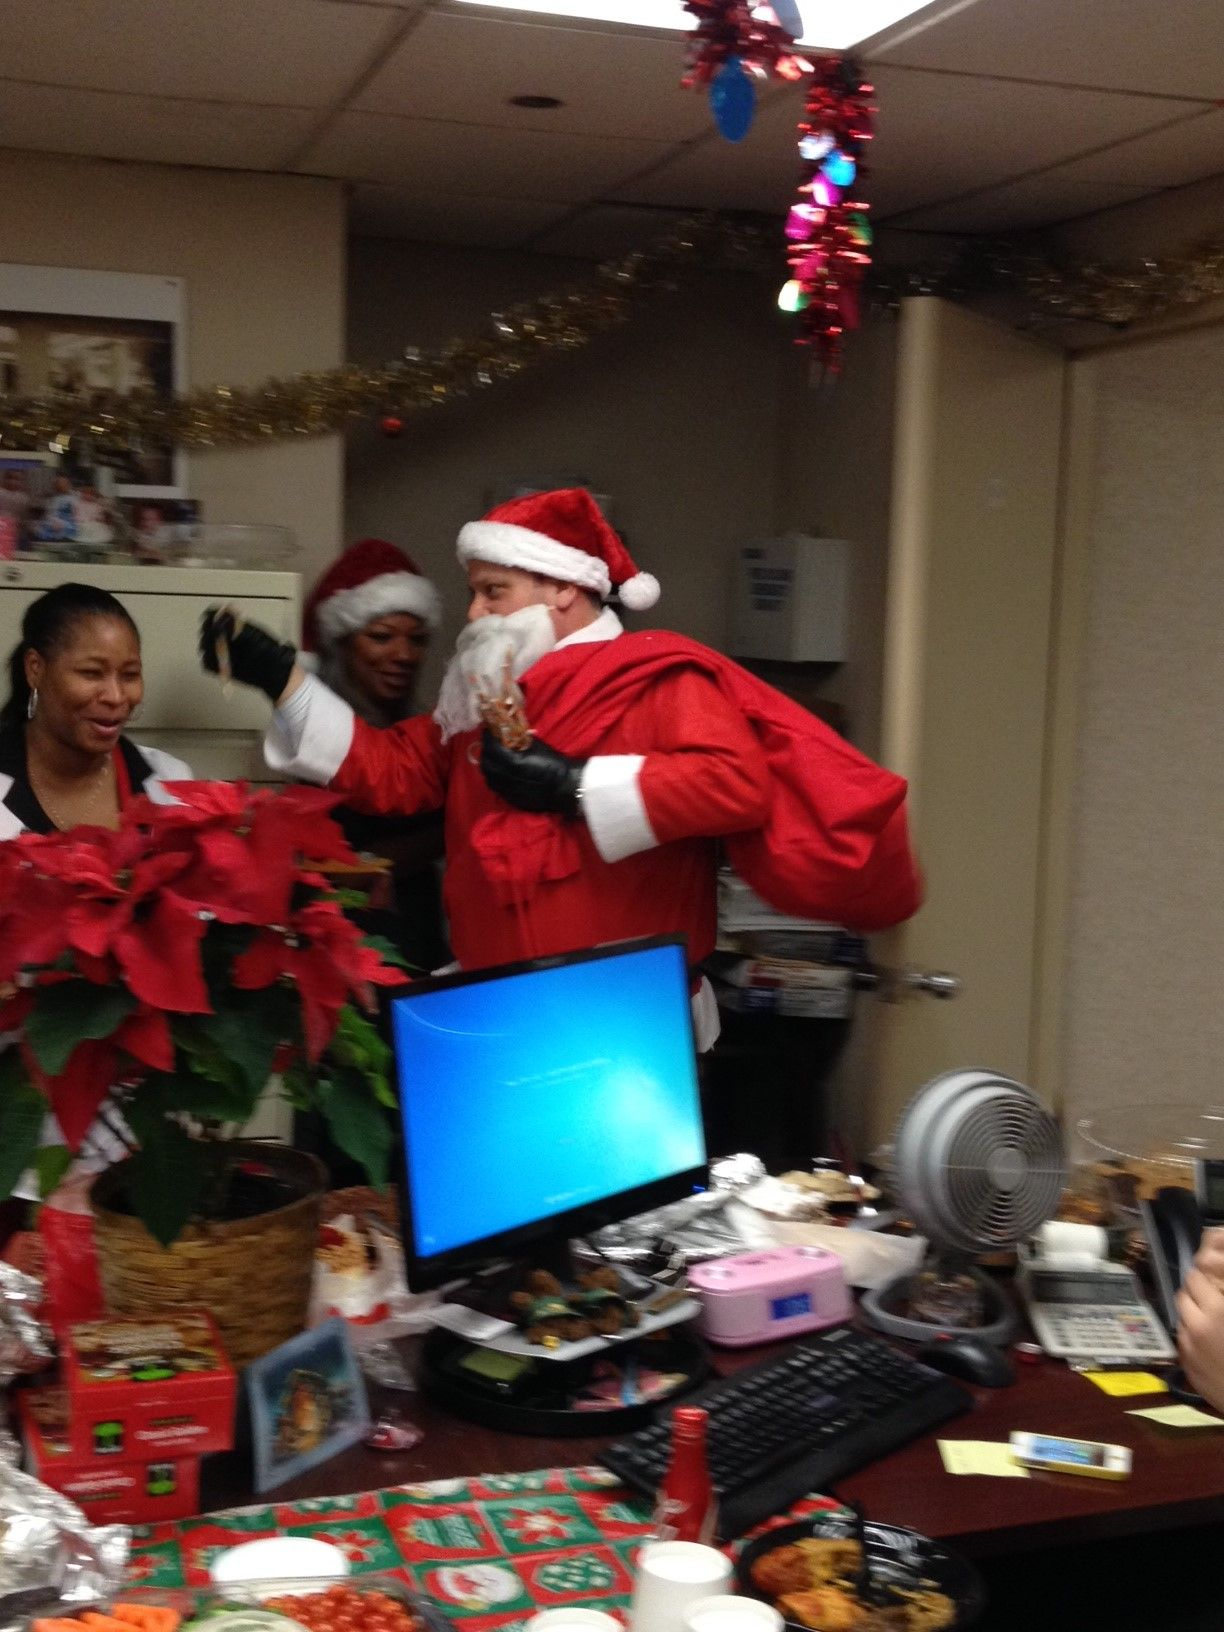 Santa Giving Out Gifts In The Sales Office Holidays In New York Holiday Decor Holiday